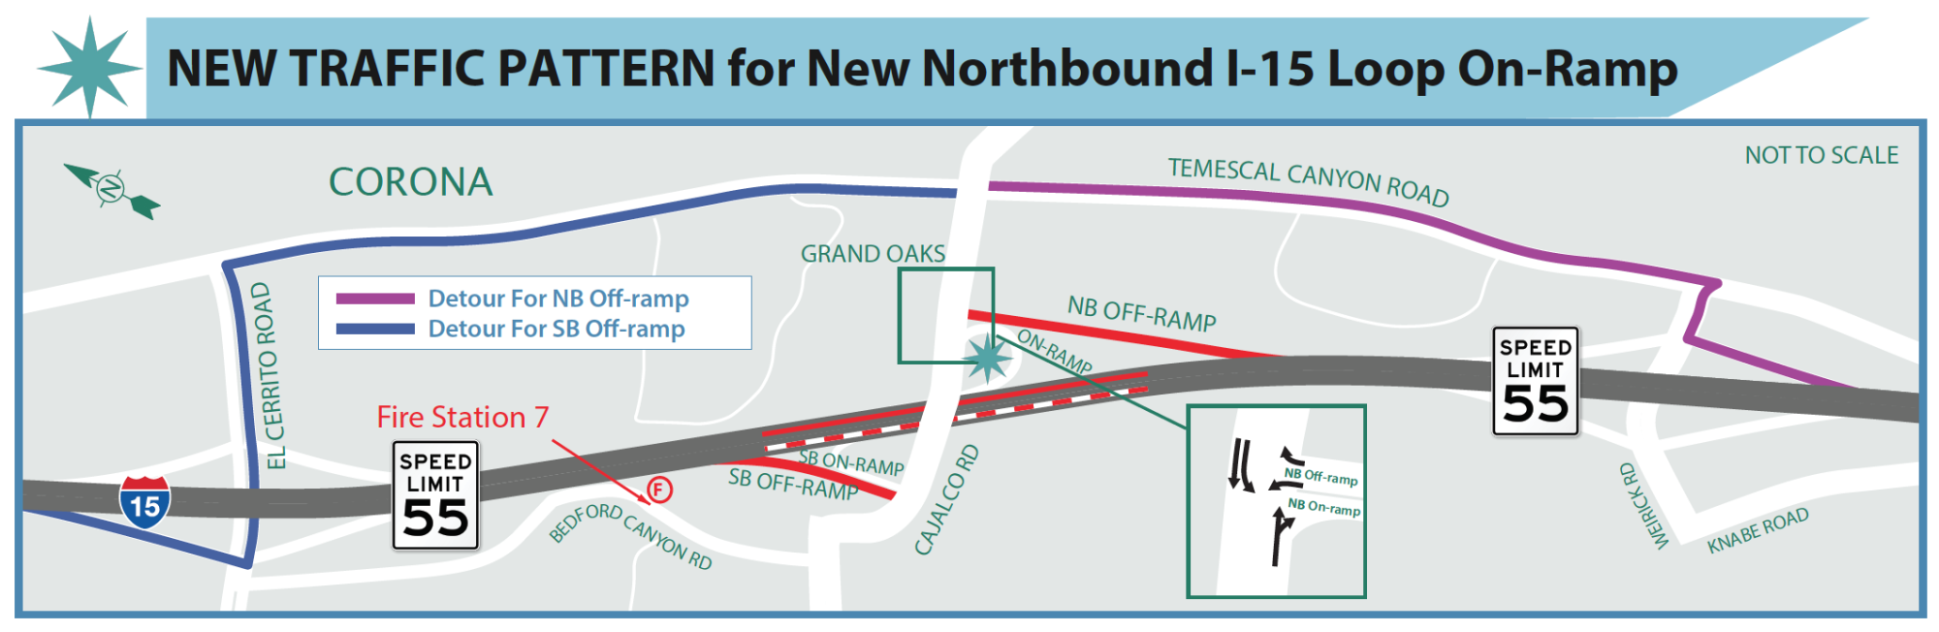 REMINDER: NEW TRAFFIC PATTERN for the New Northbound I-15 Cajalco Rd On-Ramp